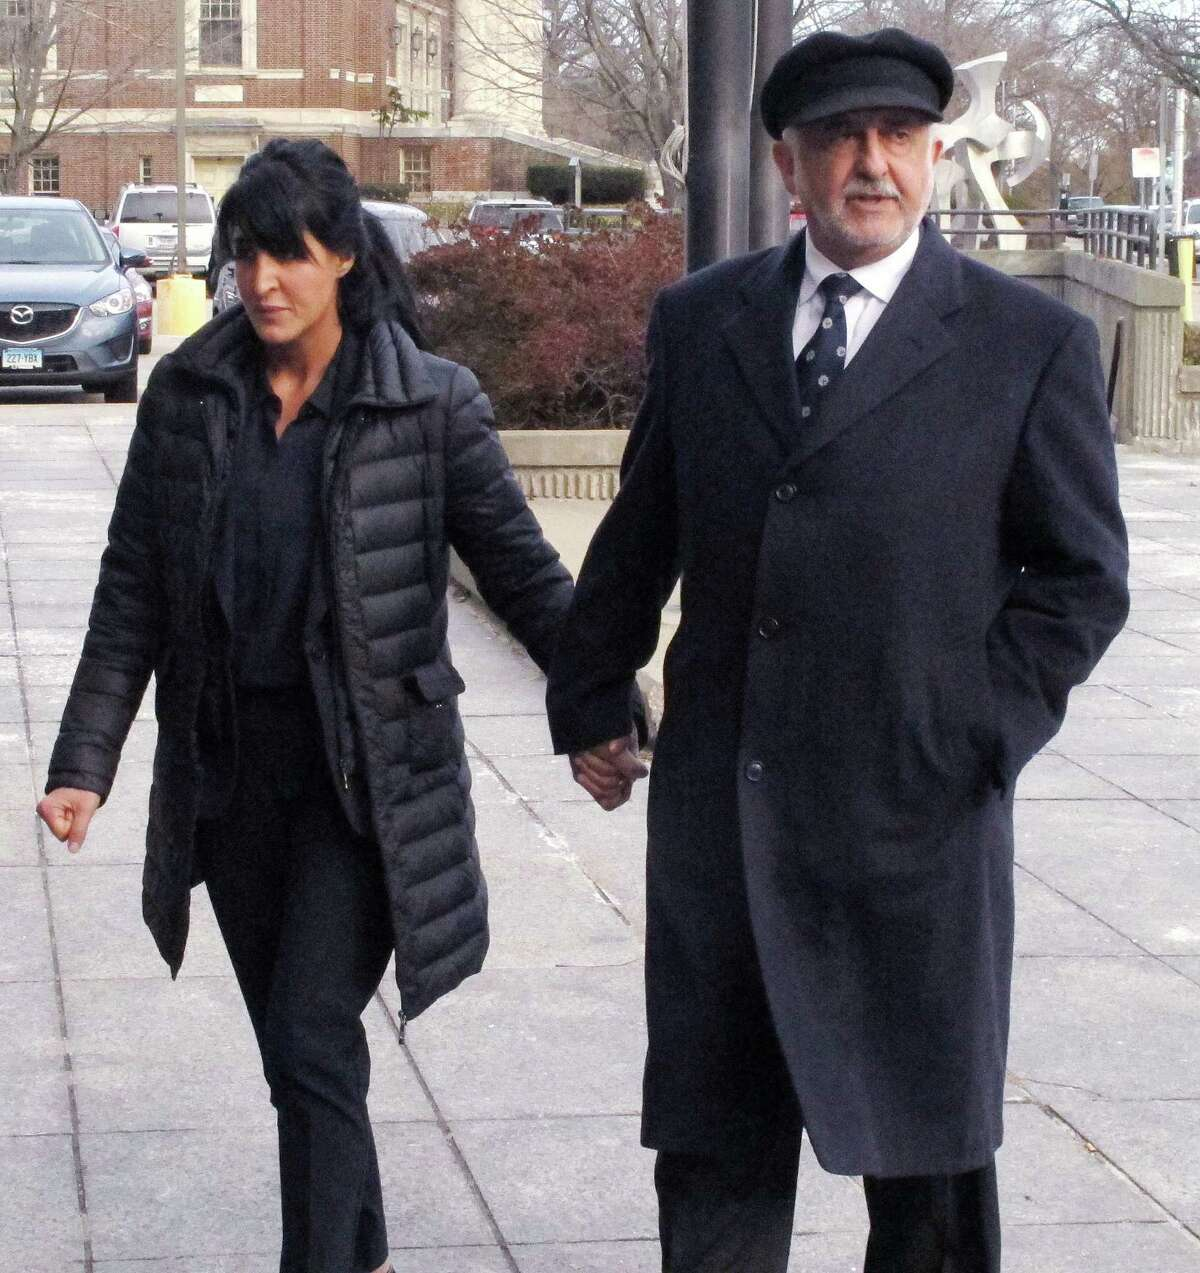 Tiffany Stevens, left, walks with her father, Edward Khalily, to Superior Court on the first day of her trial in Hartford, Conn., Tuesday, Dec. 2, 2014.